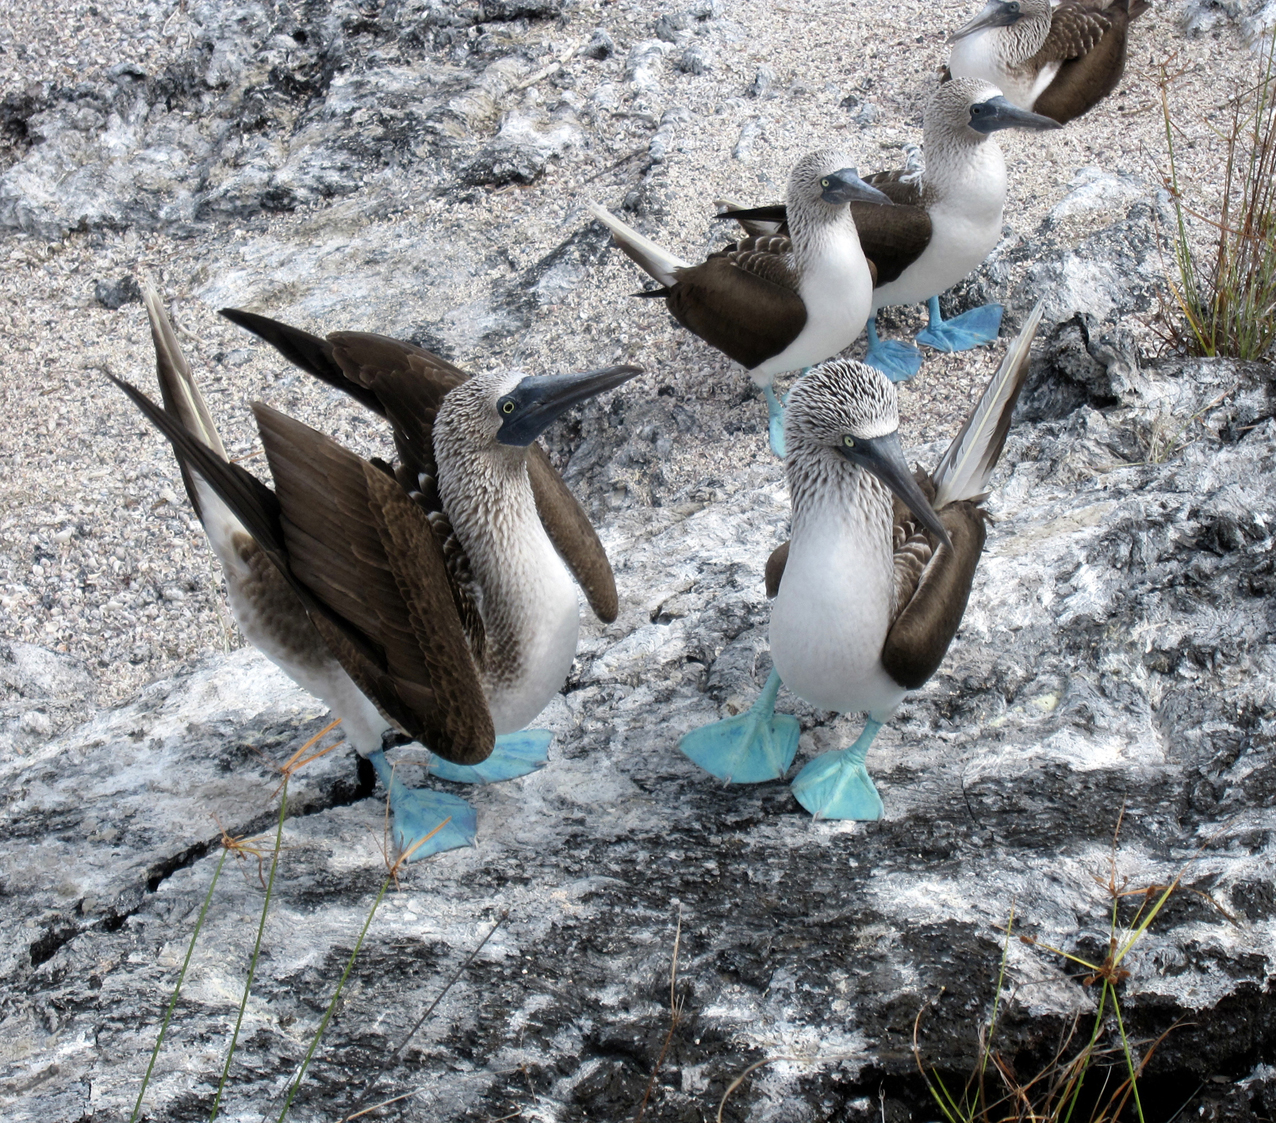 Island Hopping In The Galapagos: In The Footsteps Of Darwin